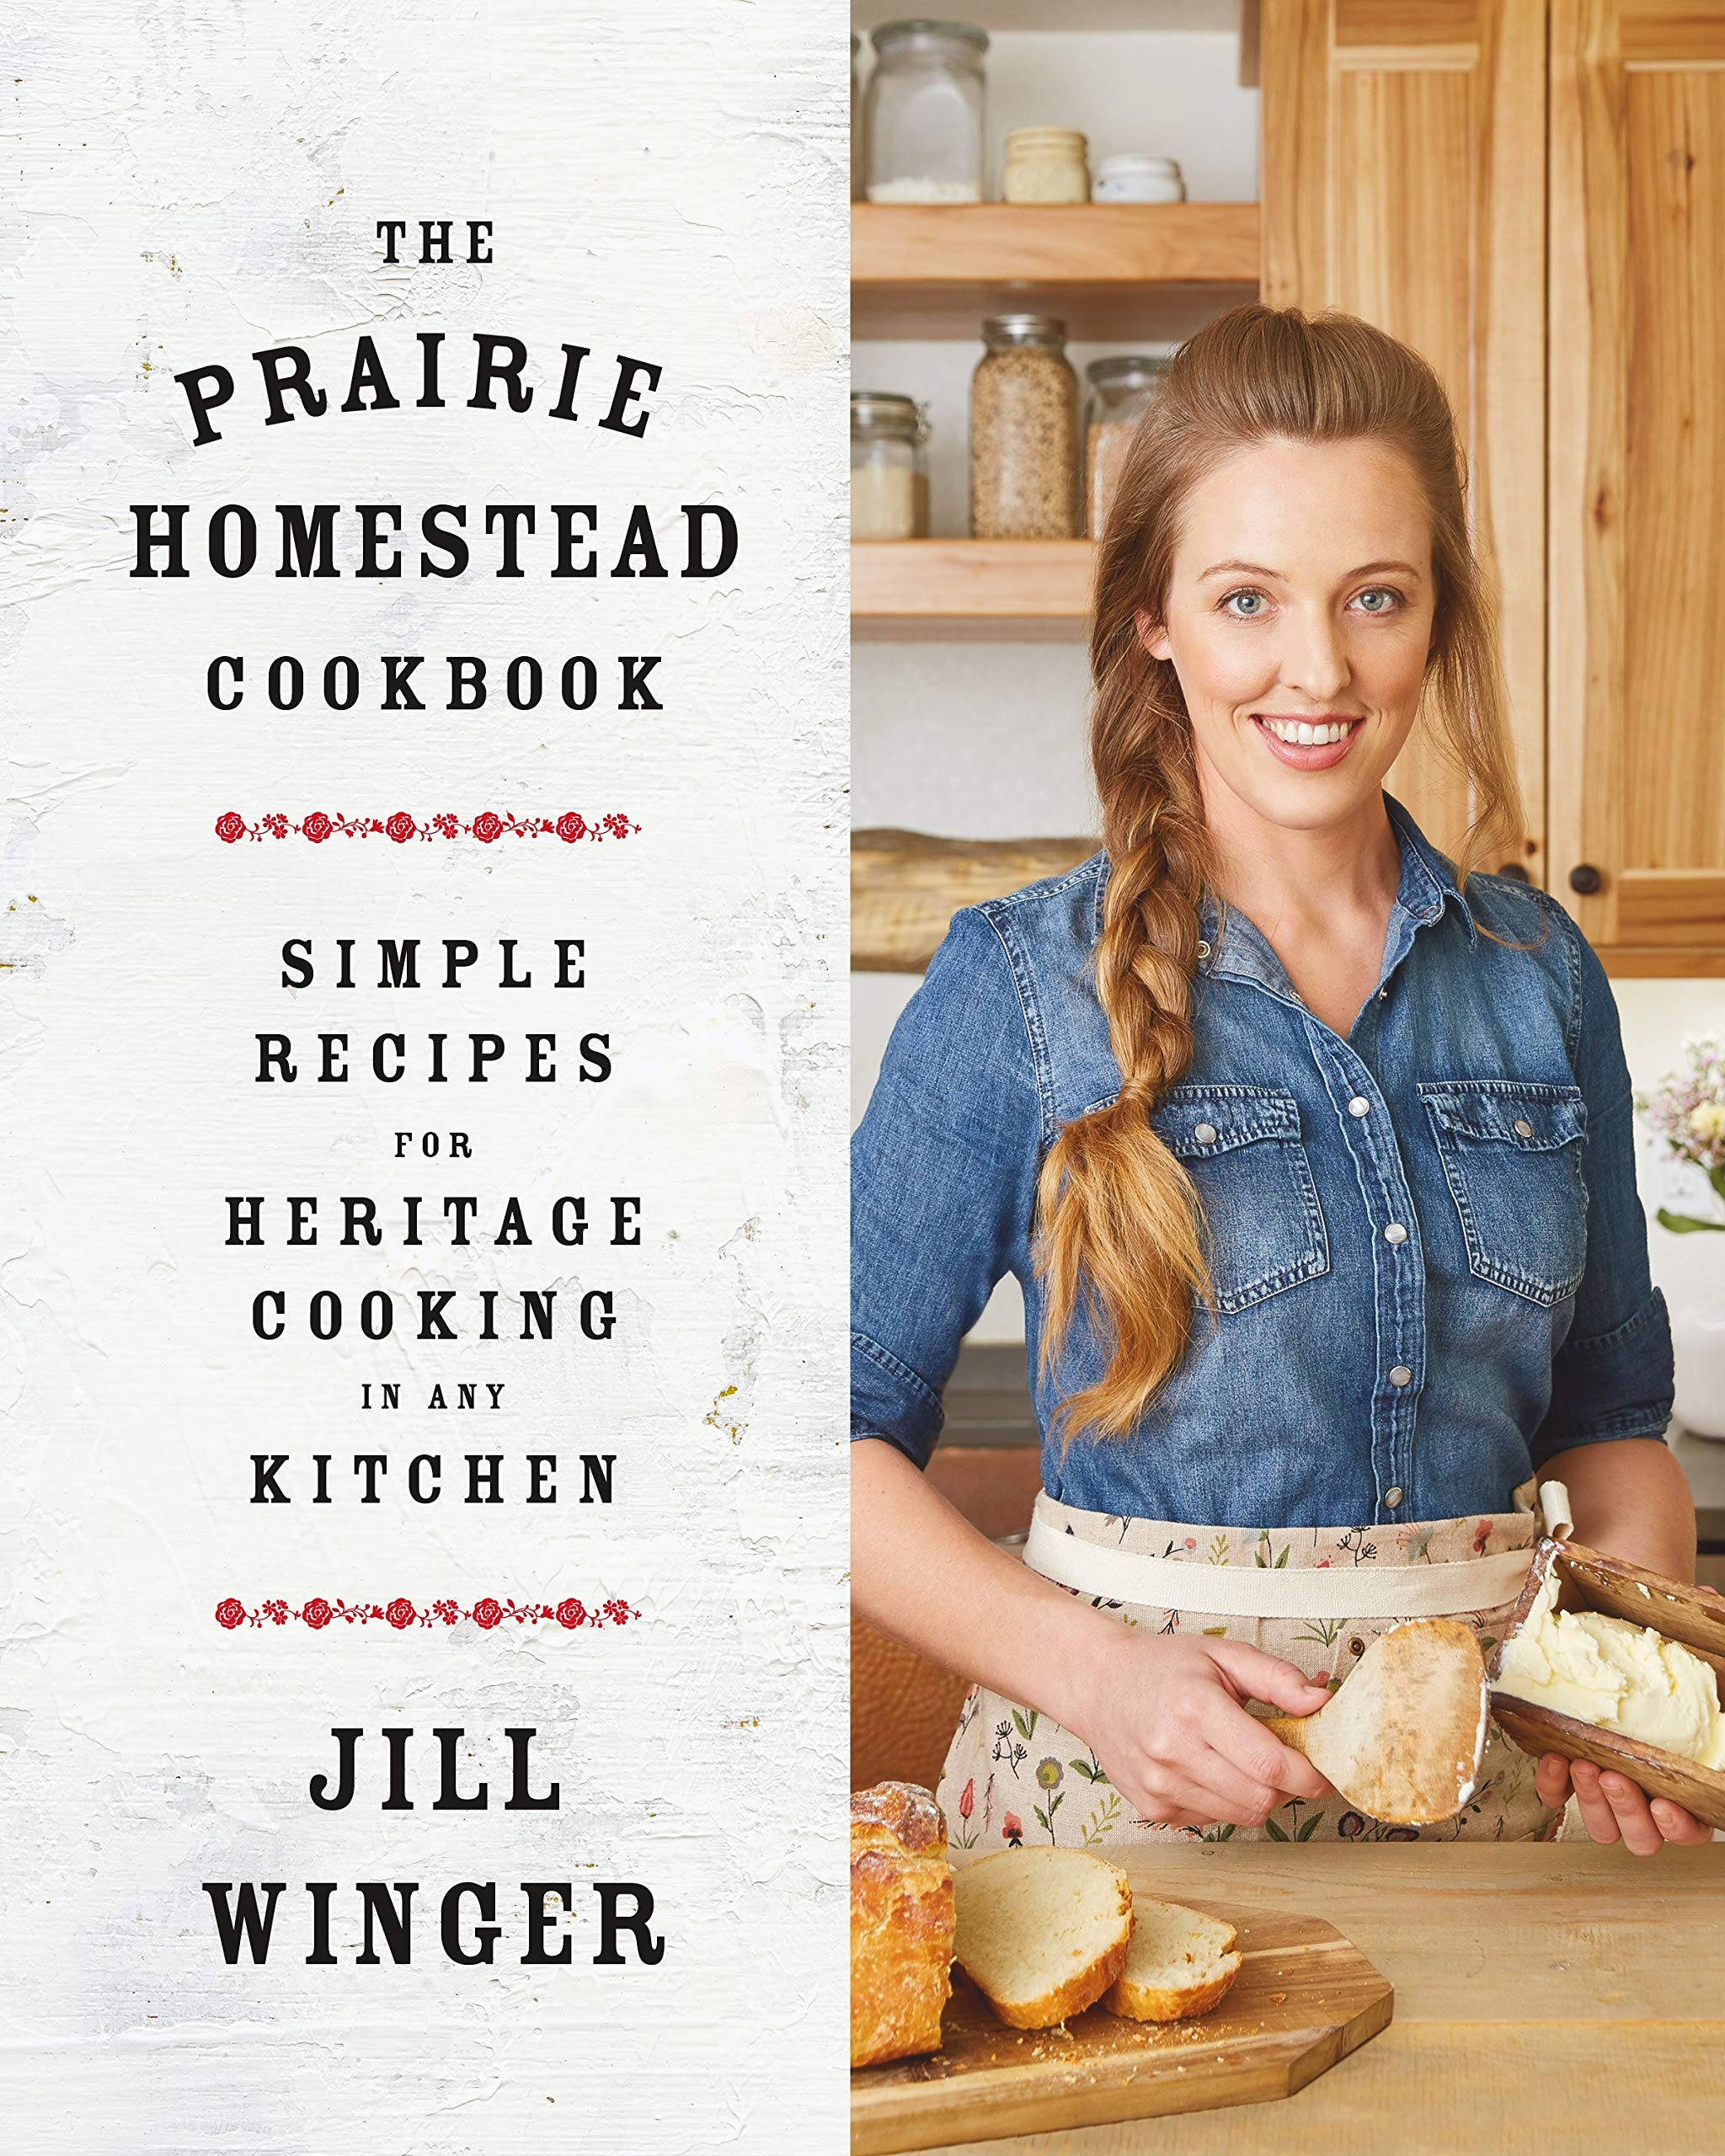 The Prairie Homestead Cookbook: Simple Recipes for Heritage Cooking in Any Kitchen by MPS